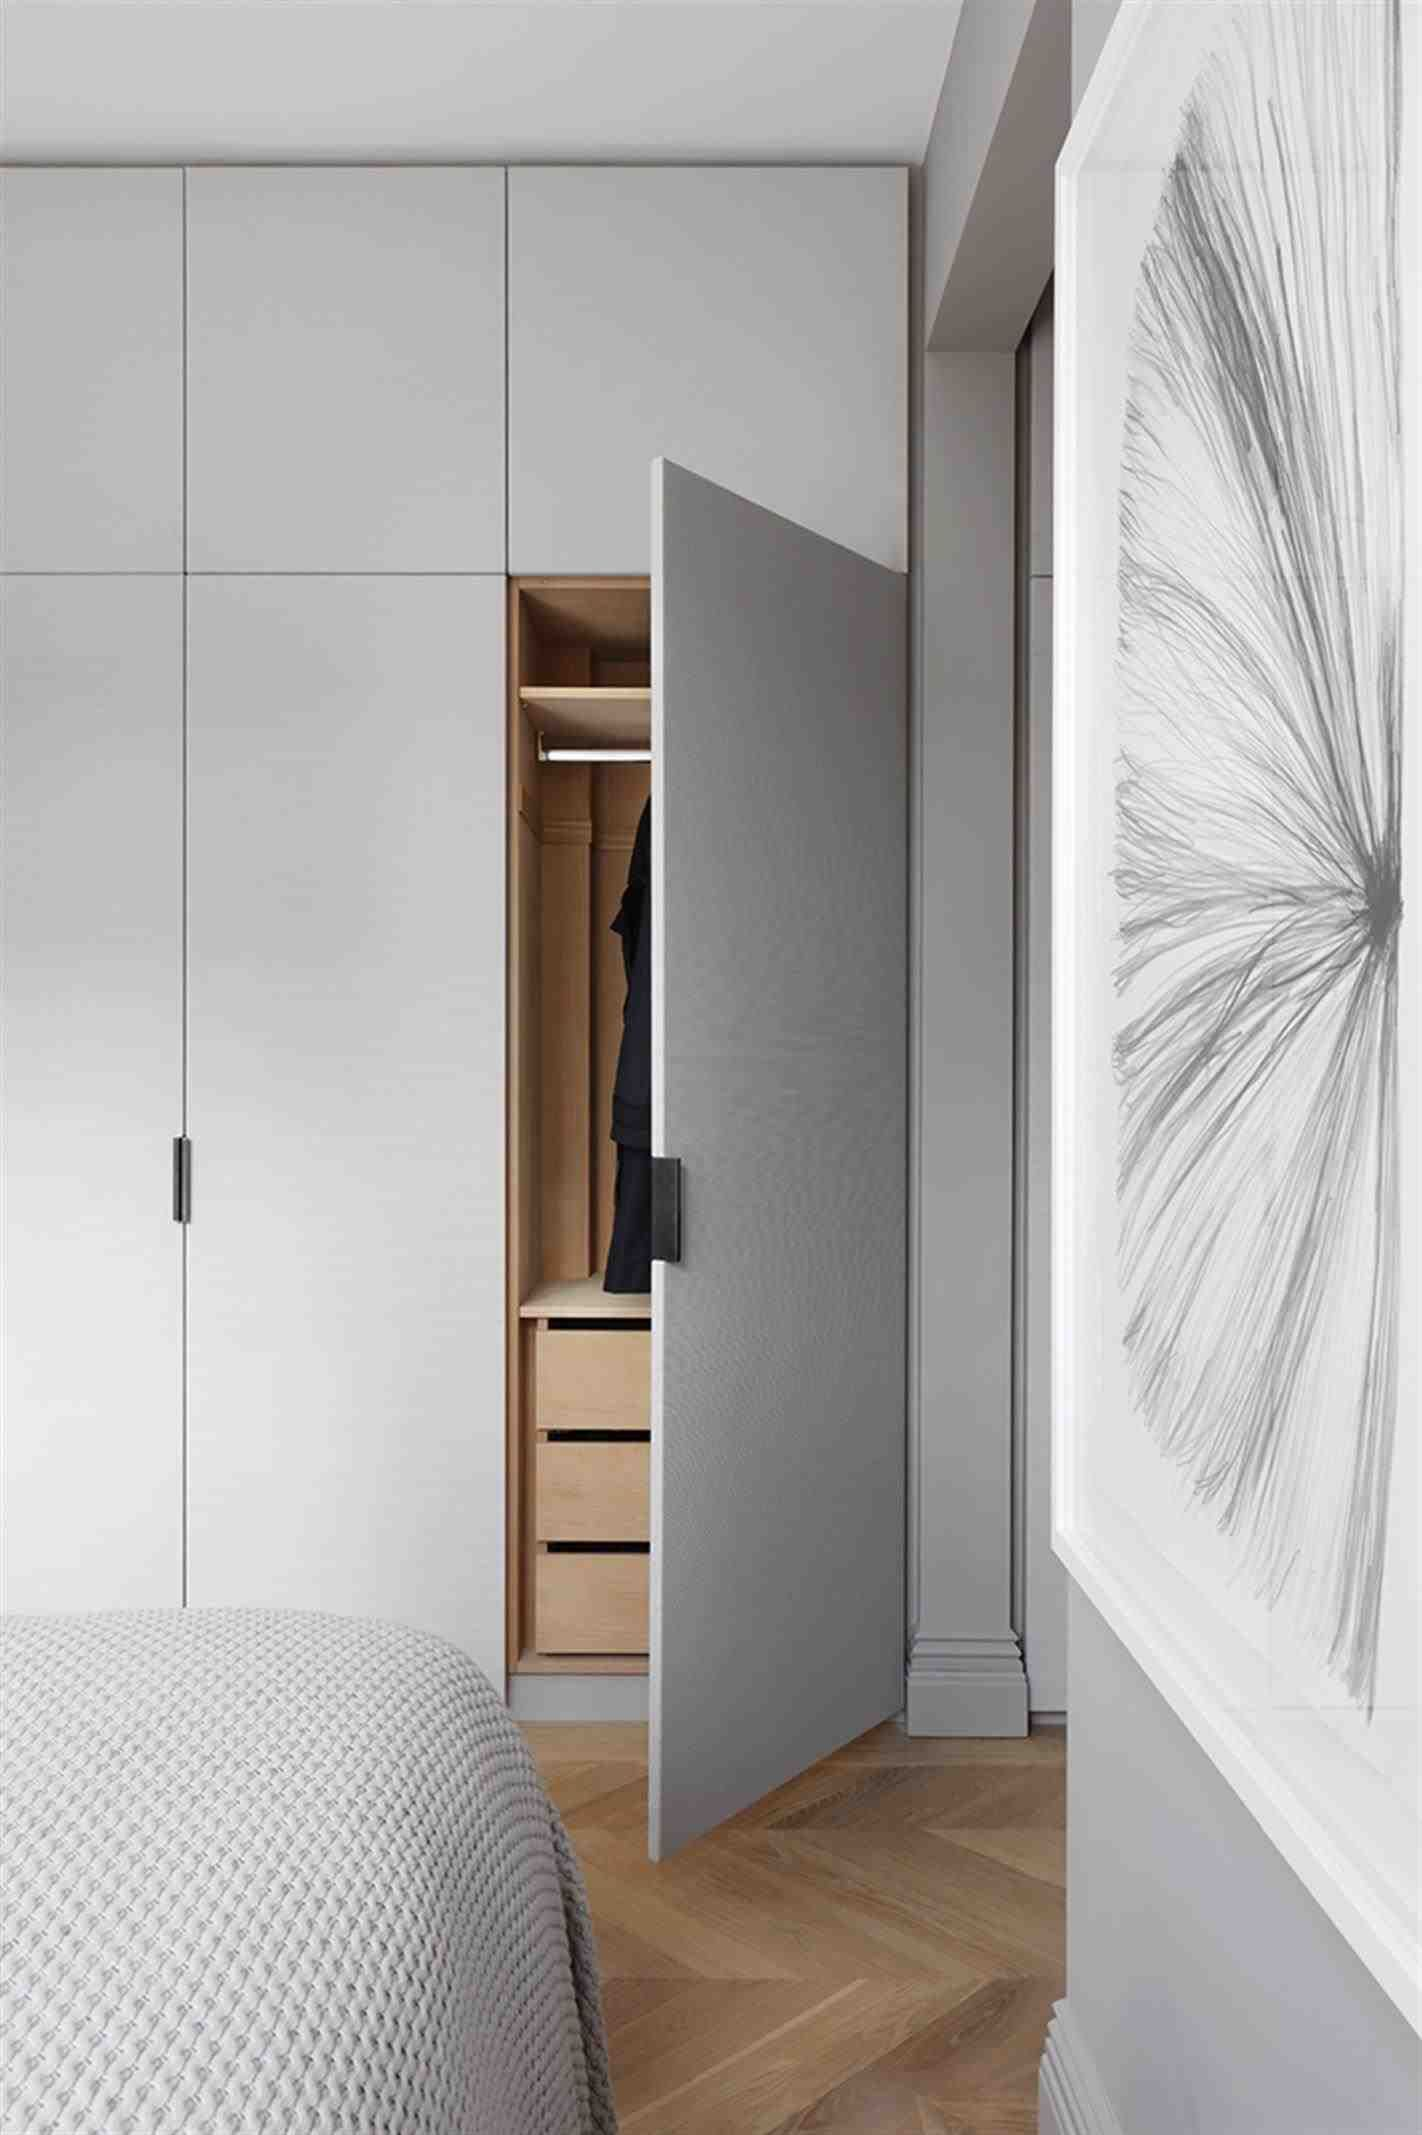 Loft bedroom fitted wardrobes  New Post modern closet cabinet design  Decors Ideas  Pinterest